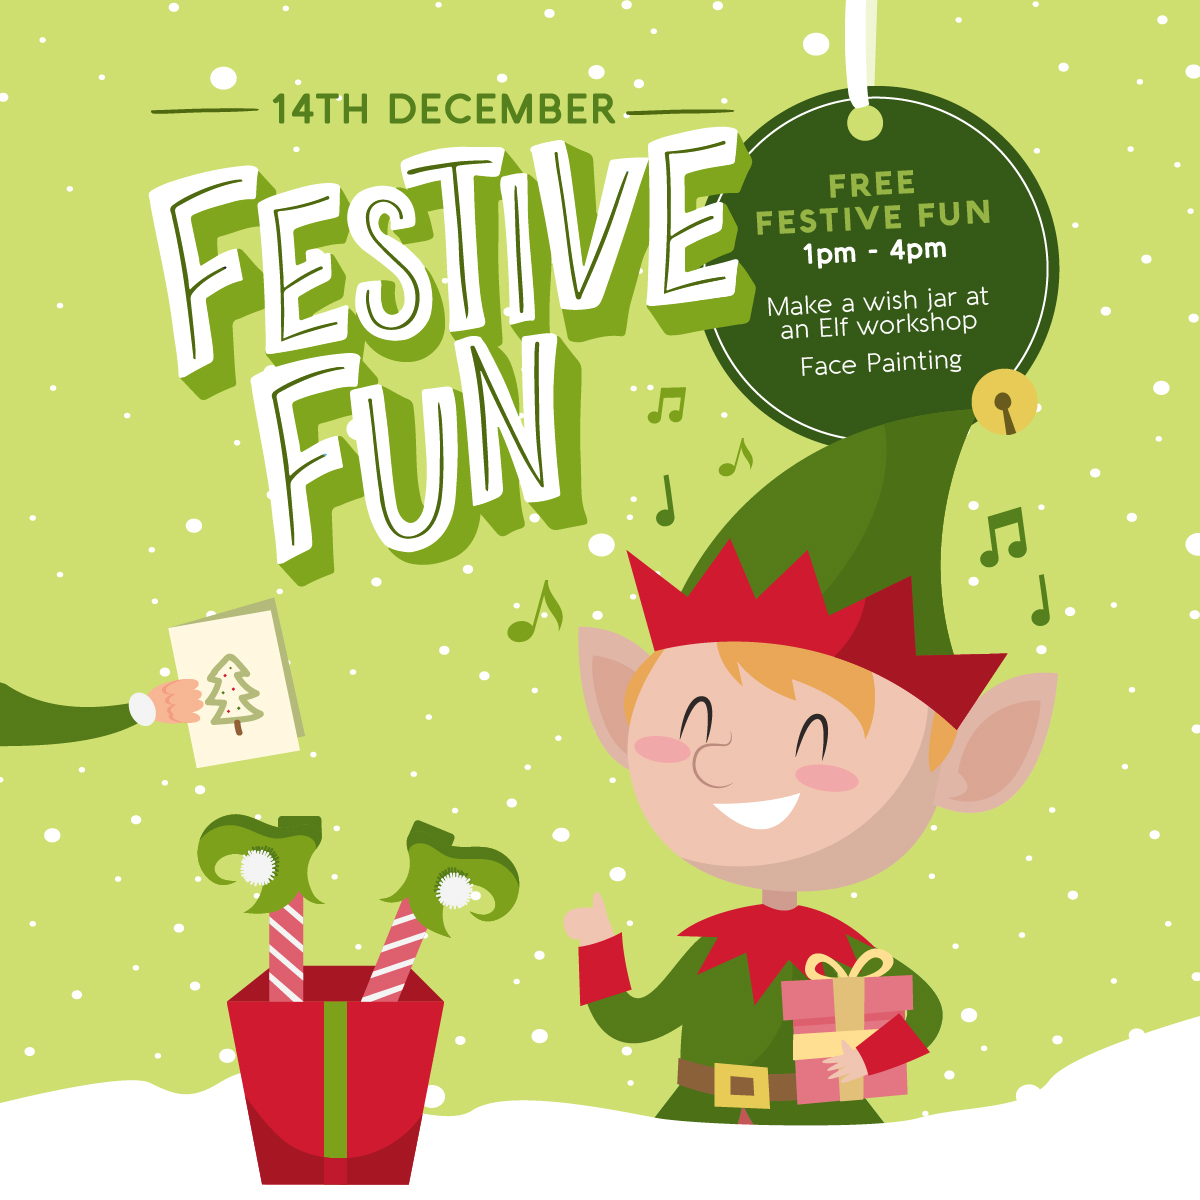 Festive Fun for Kids at Citywest Shopping Centre!